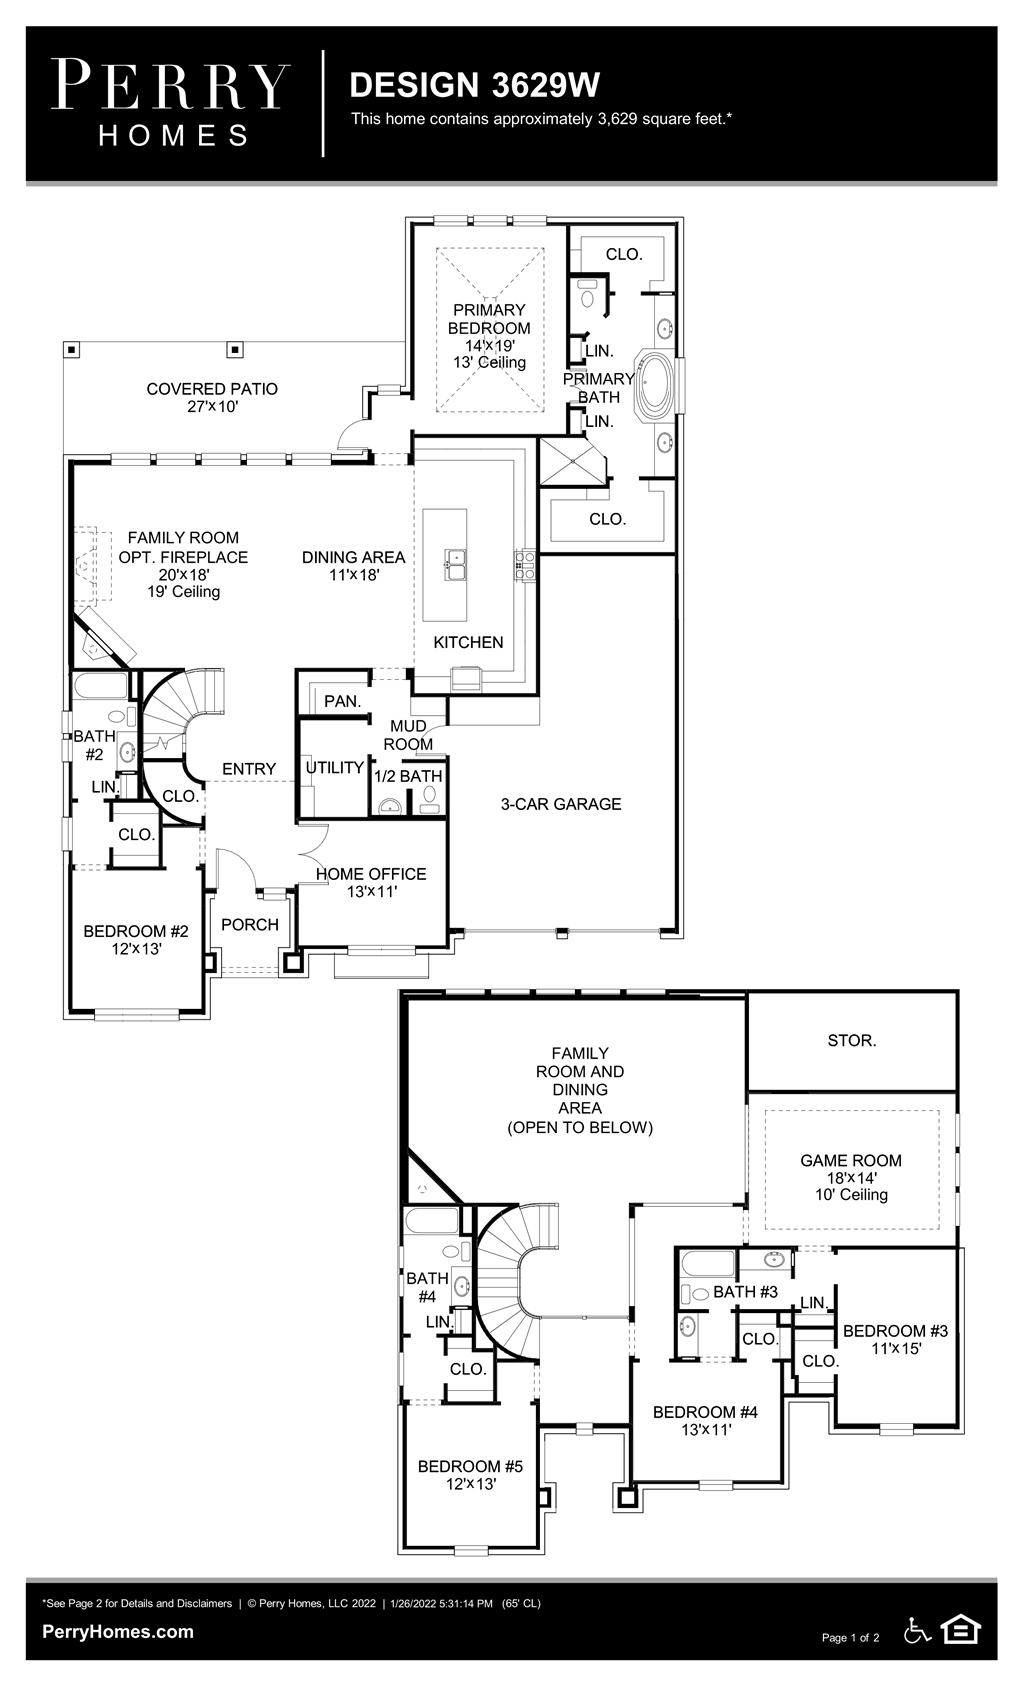 Floor Plan for 3629W